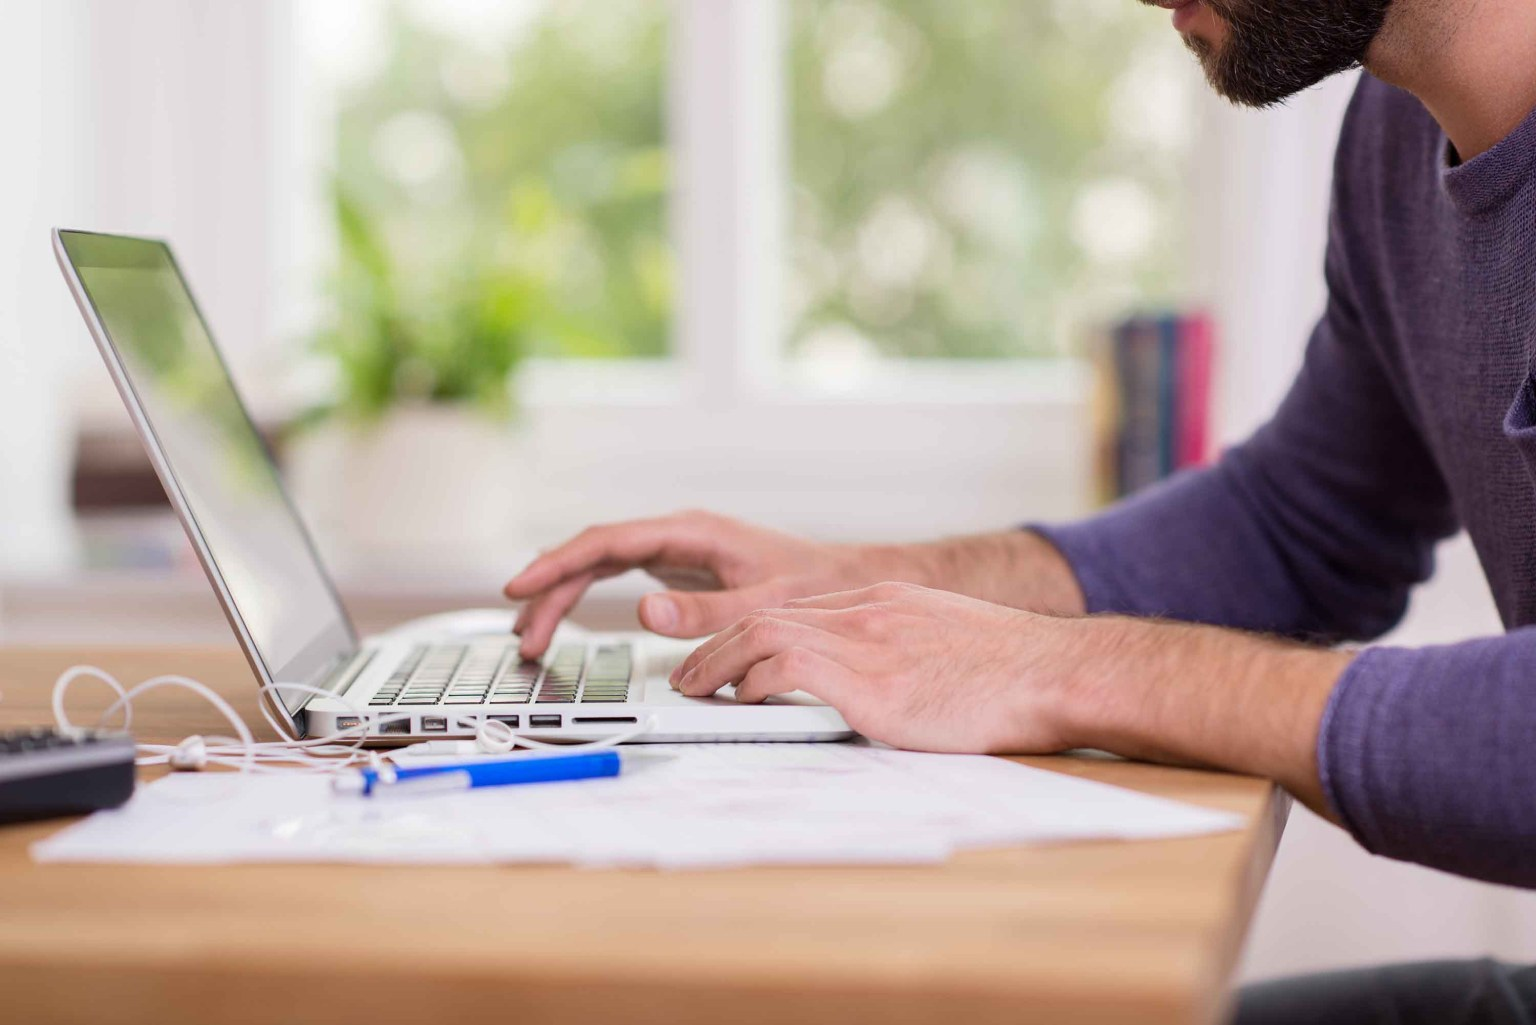 STUDY: Employees working from home are putting in longer hours than before the pandemic